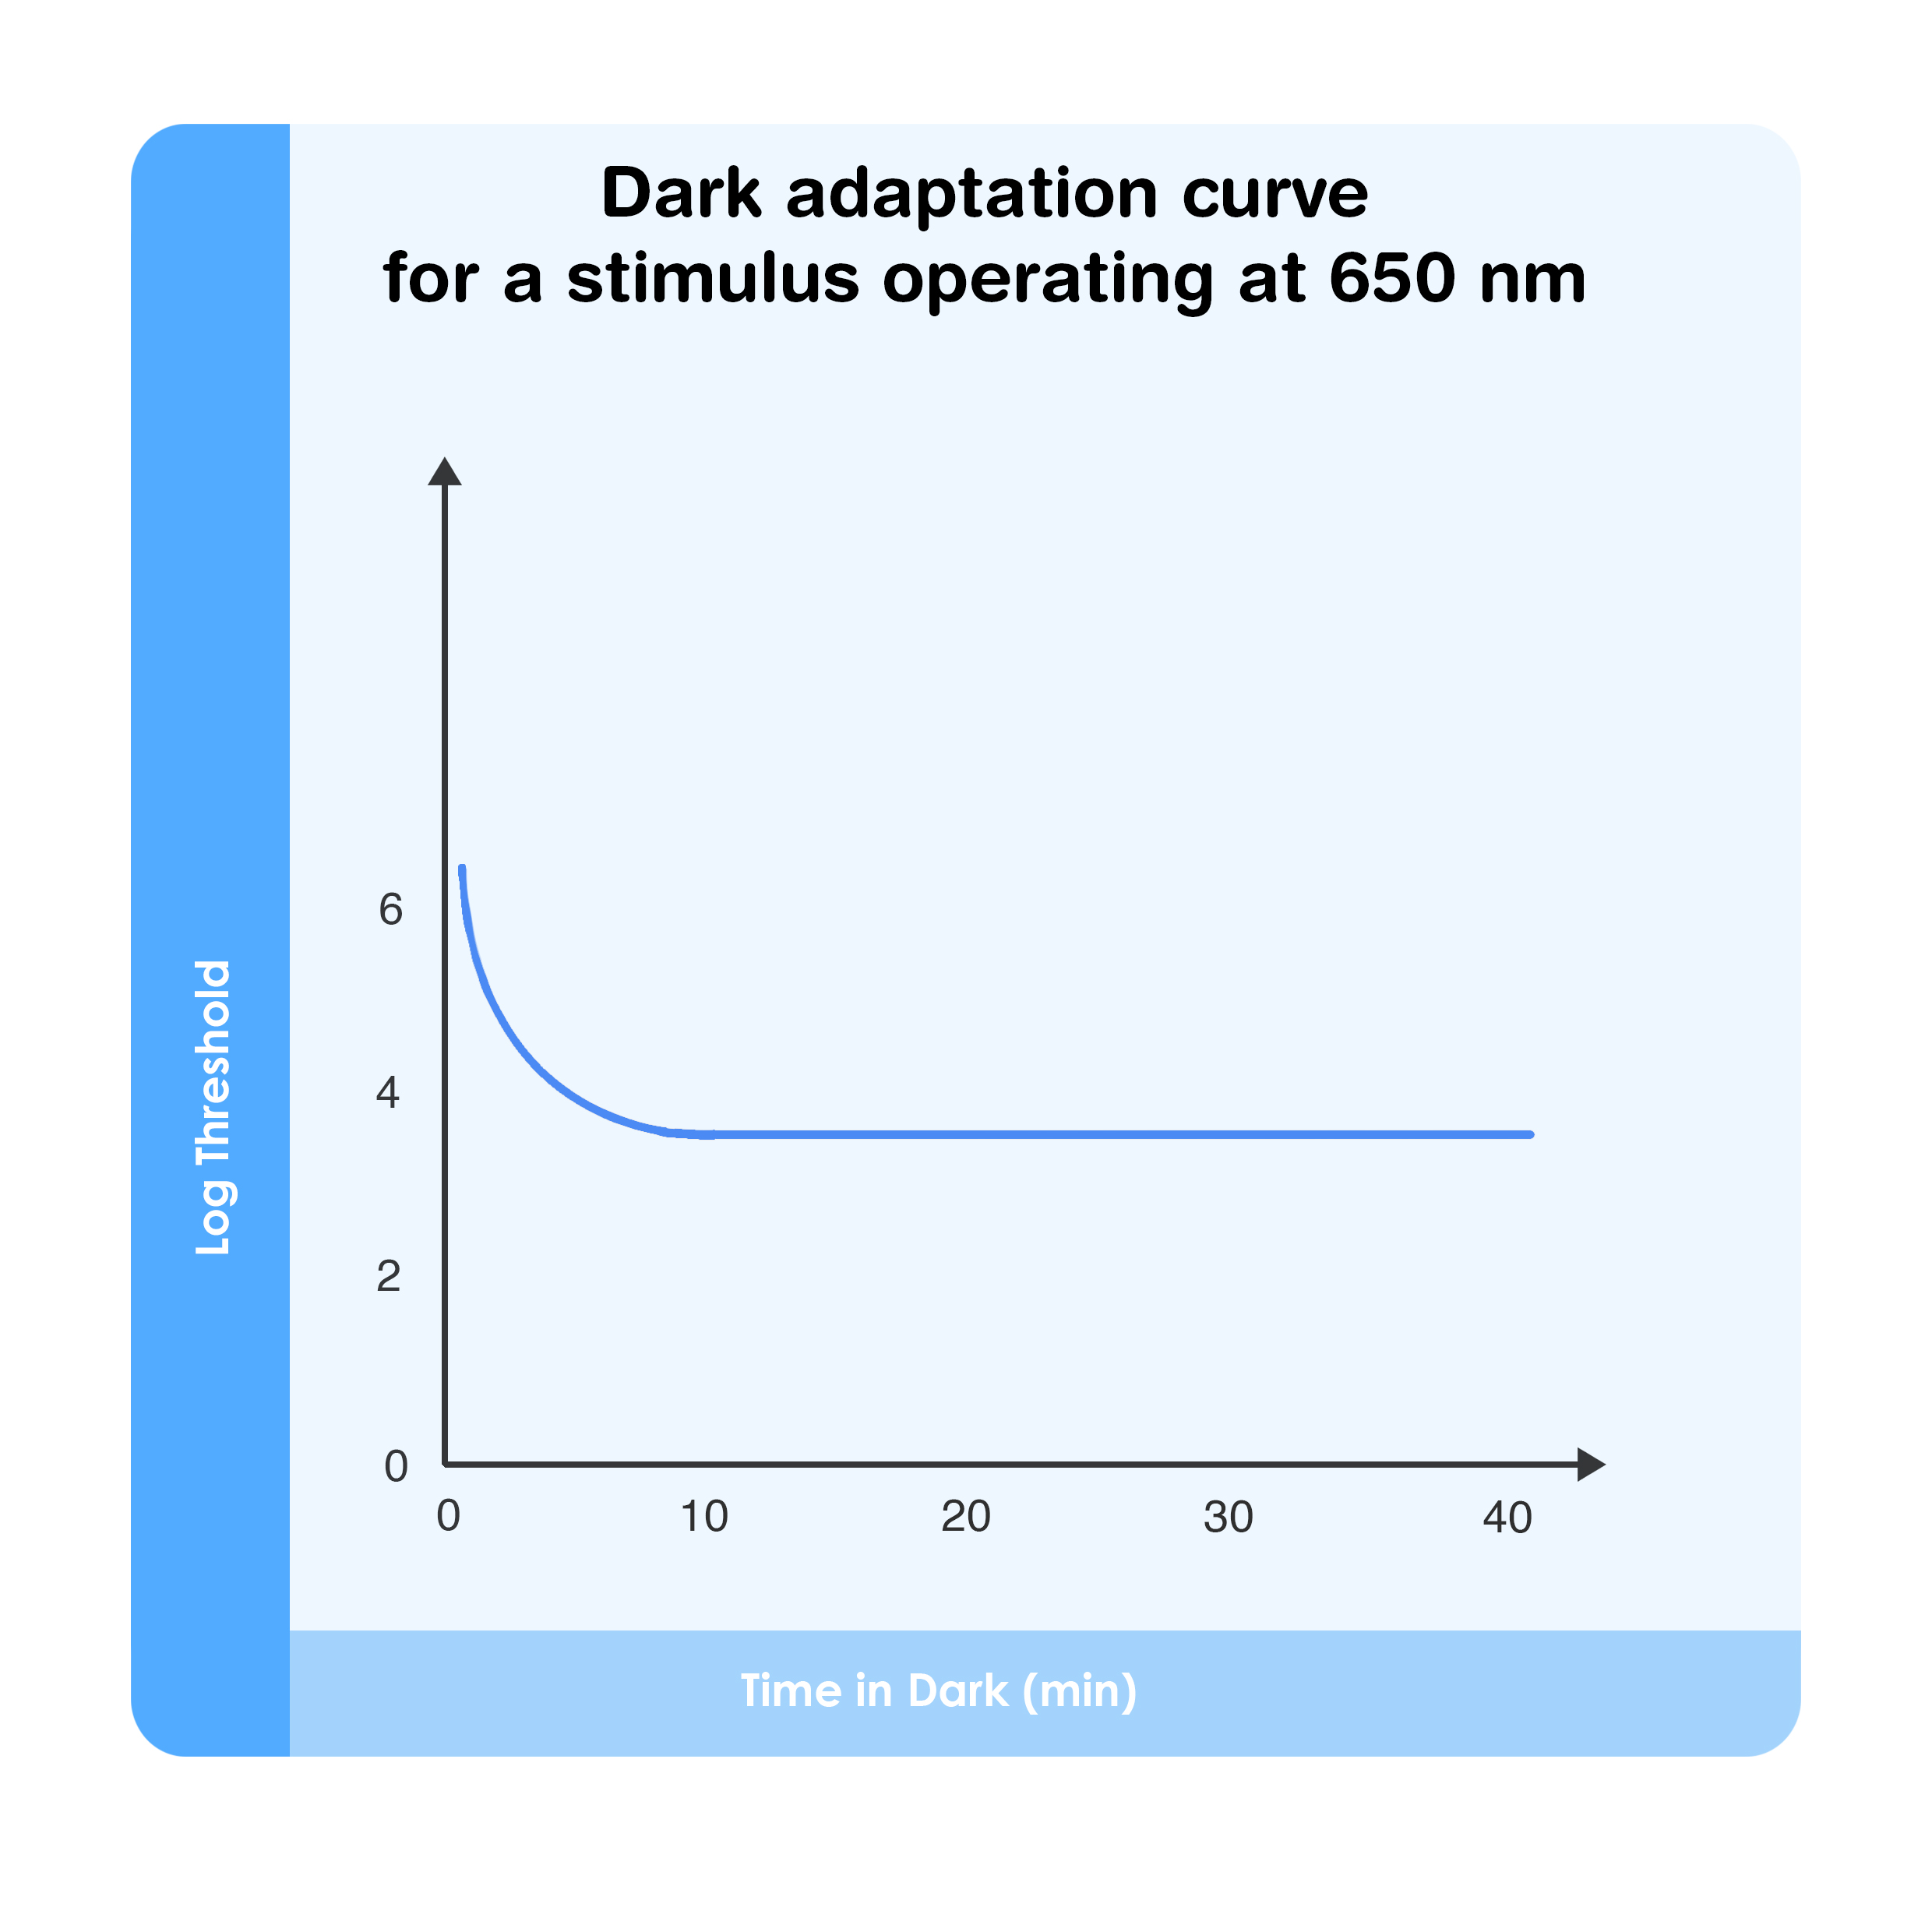 Dark adaptation curve for a stimulus operating at 650 nm